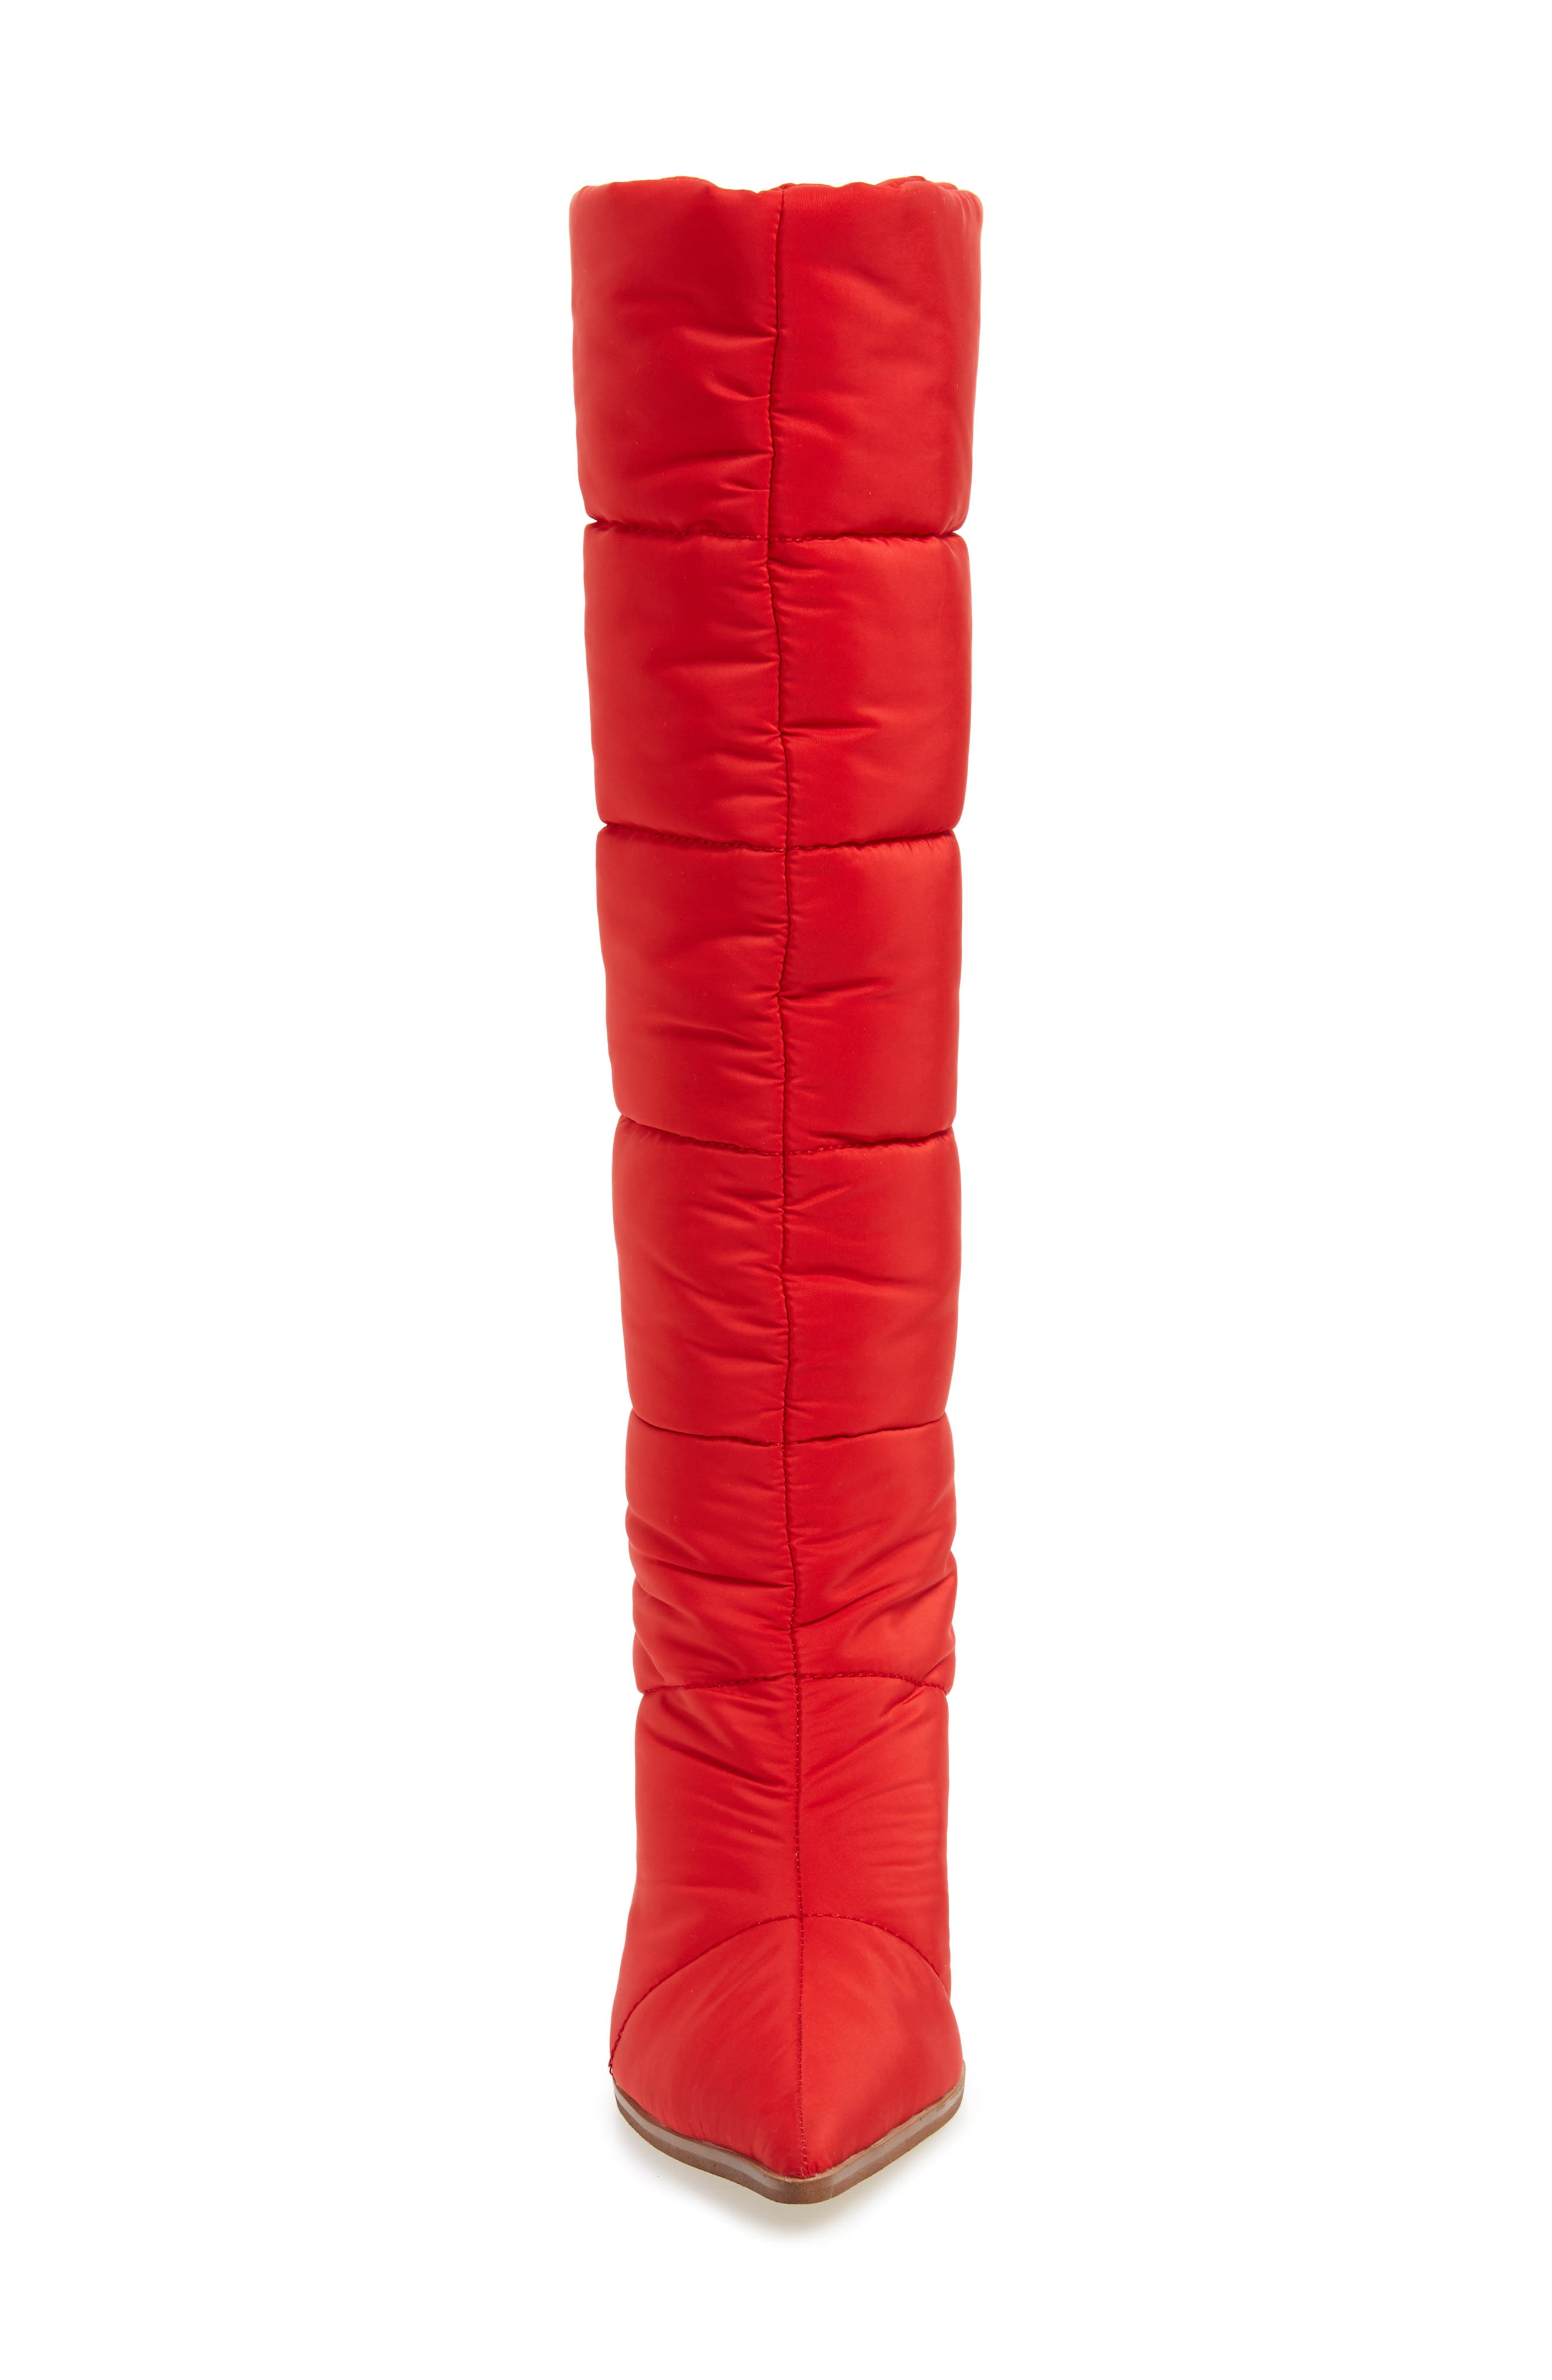 Apris Knee High Puffer Boot,                             Alternate thumbnail 4, color,                             RED FABRIC